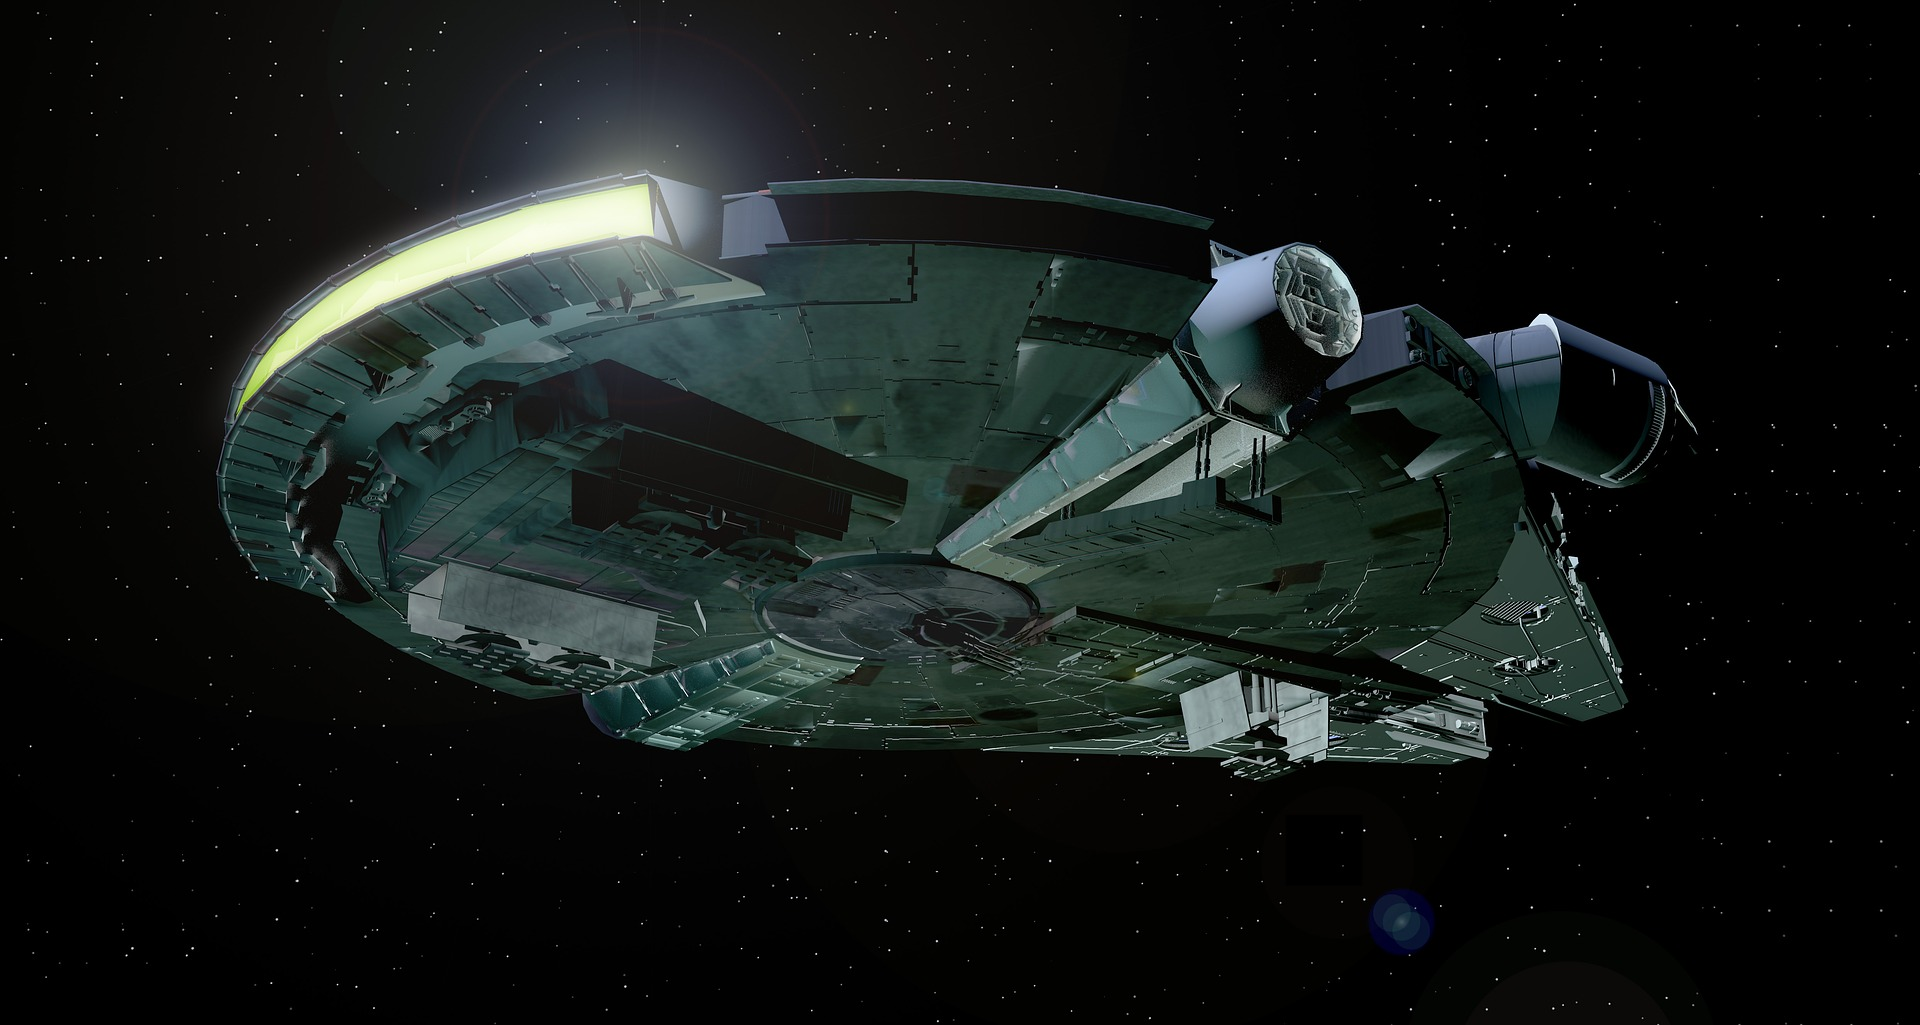 How star wars changed the film industry starship millennium falcon